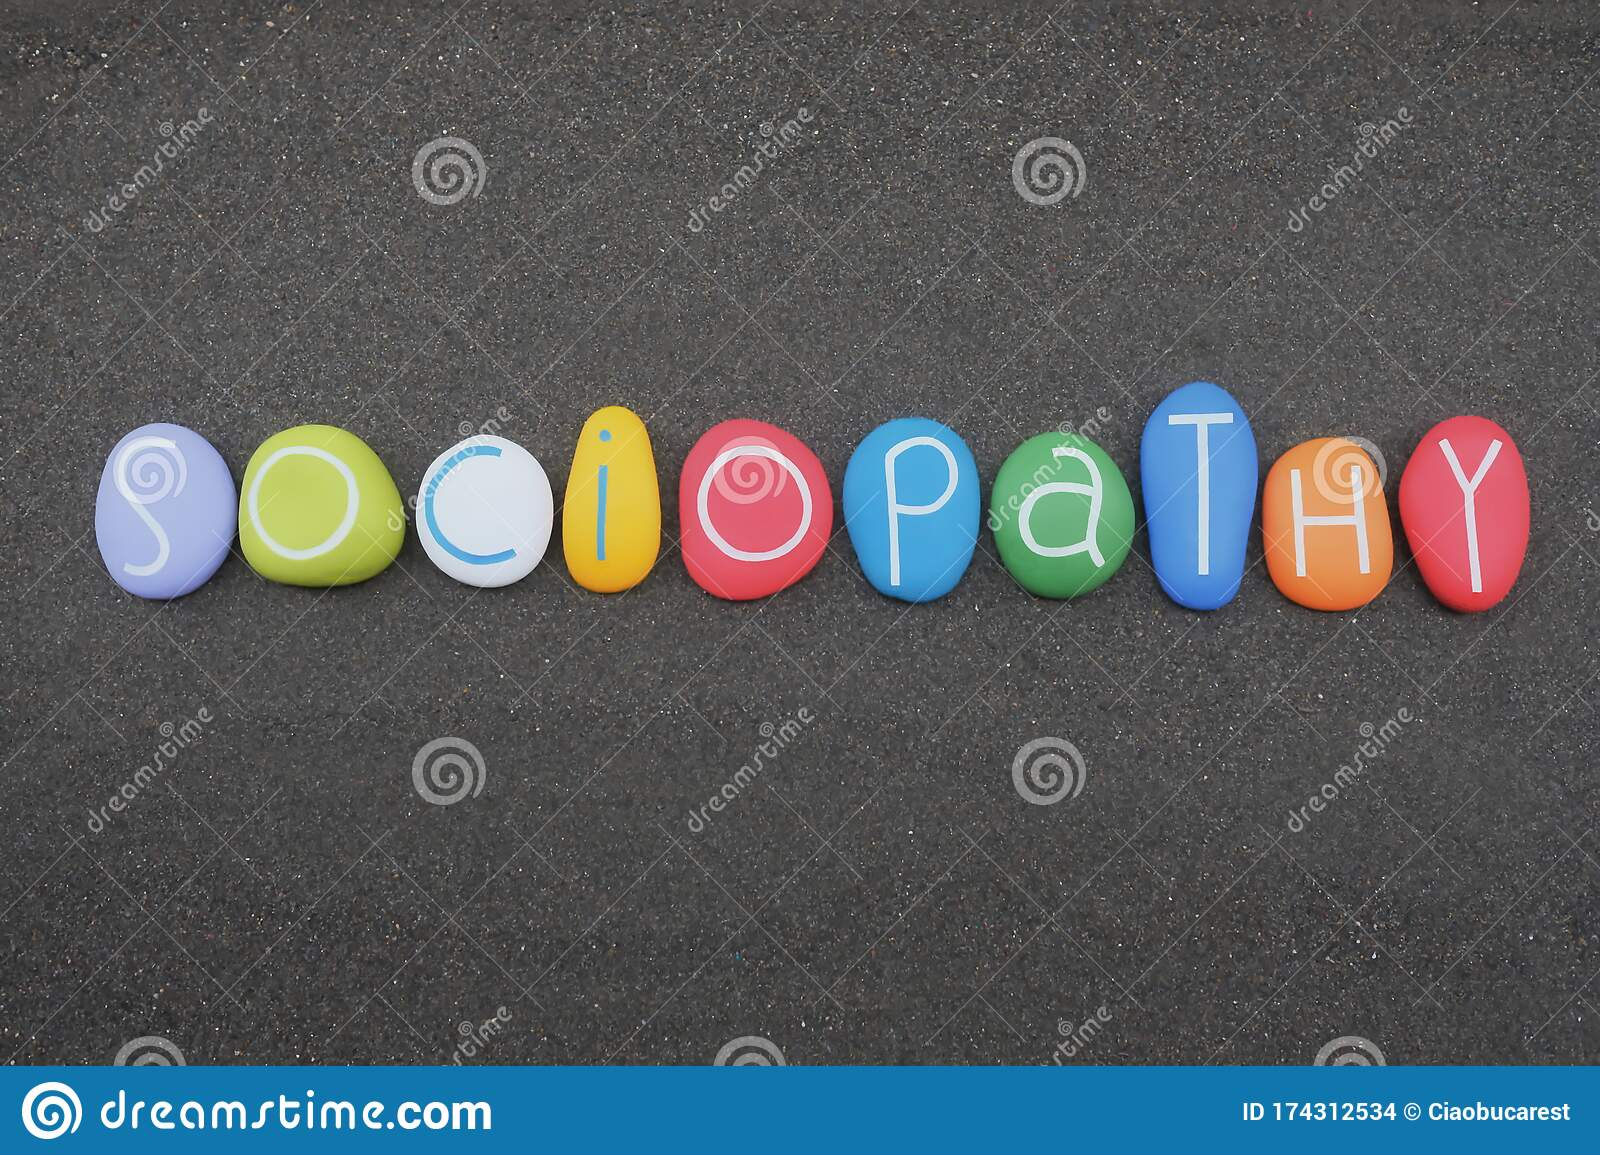 Sociopathy Antisocial Personality Disorder Word Composed